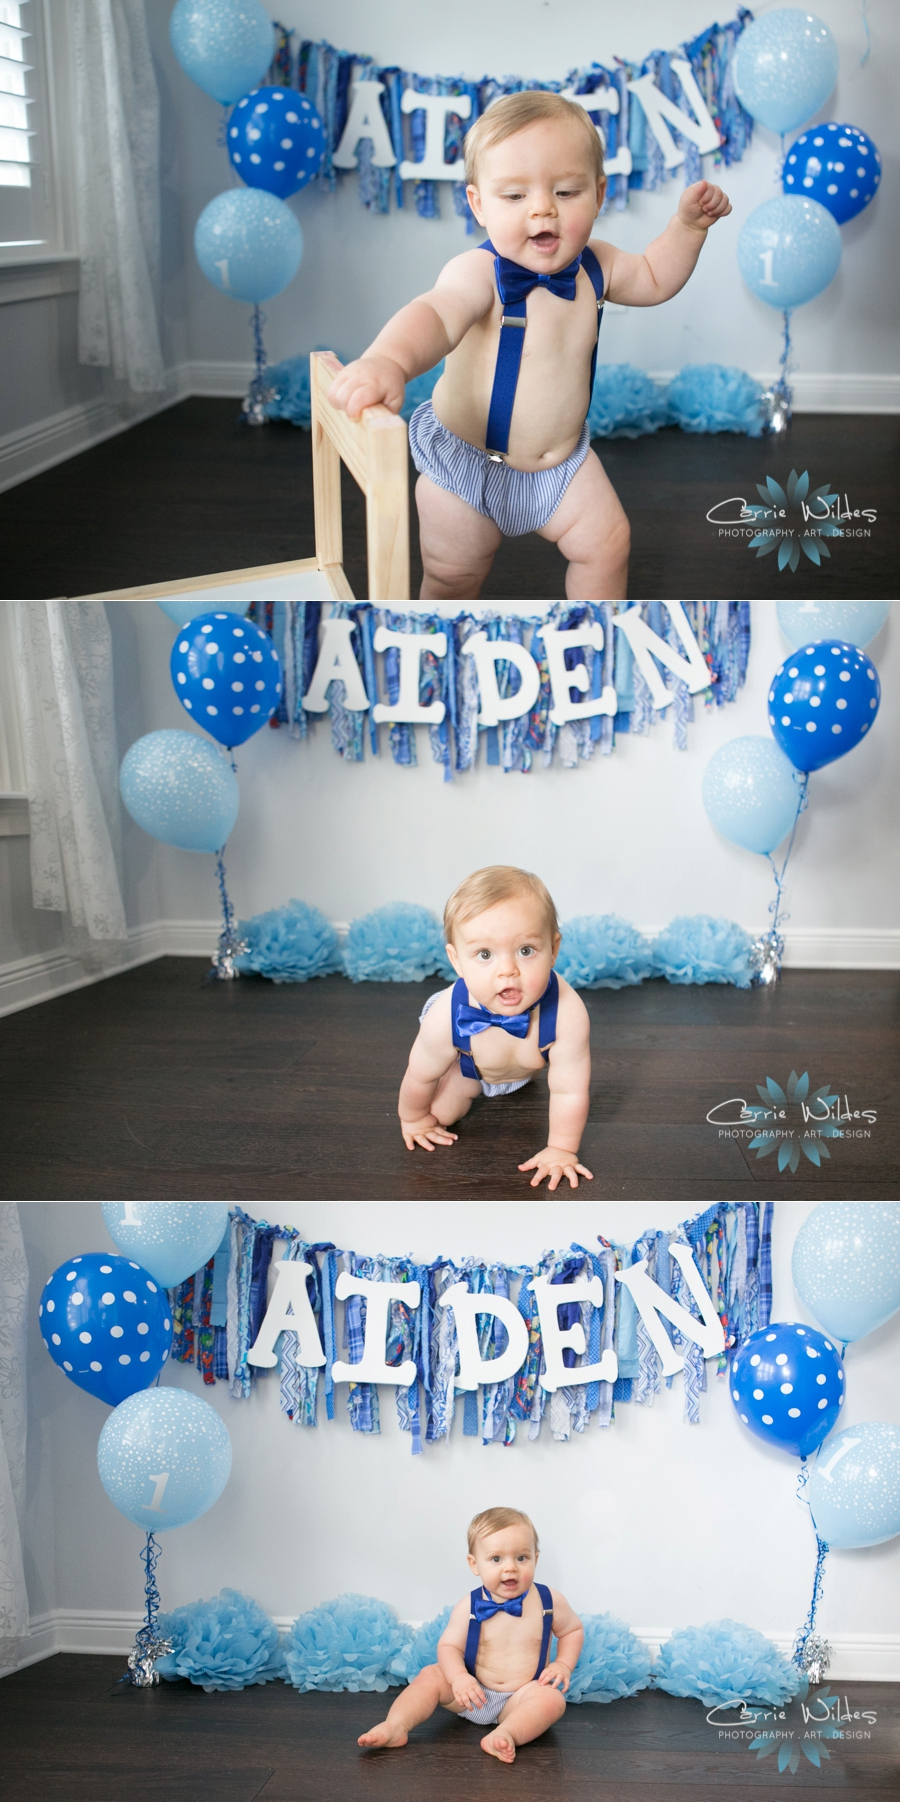 4_9_18 Aiden 1 Year Tampa Baby Portraits_0006.jpg